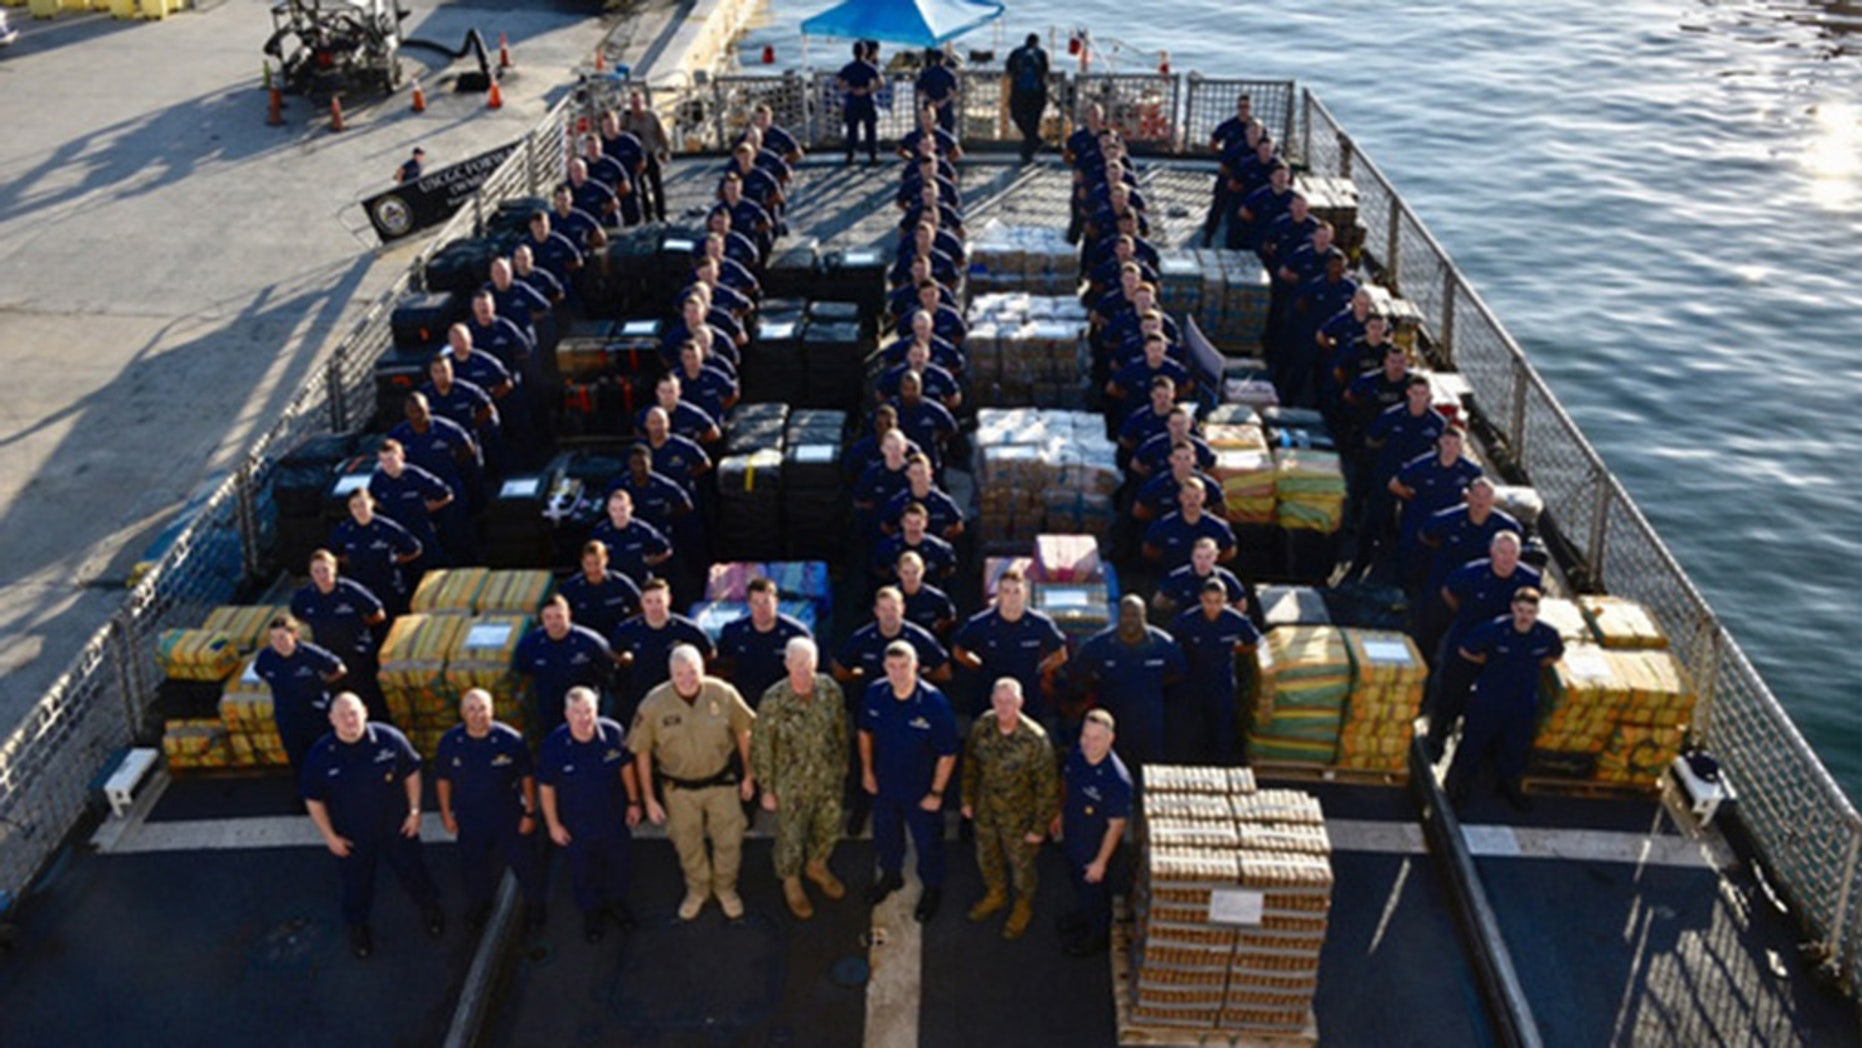 Nearly 35,000 pounds of cocaine was seized in international waters by the Coast Guard and off-loaded in Florida on Tuesday, officials said.